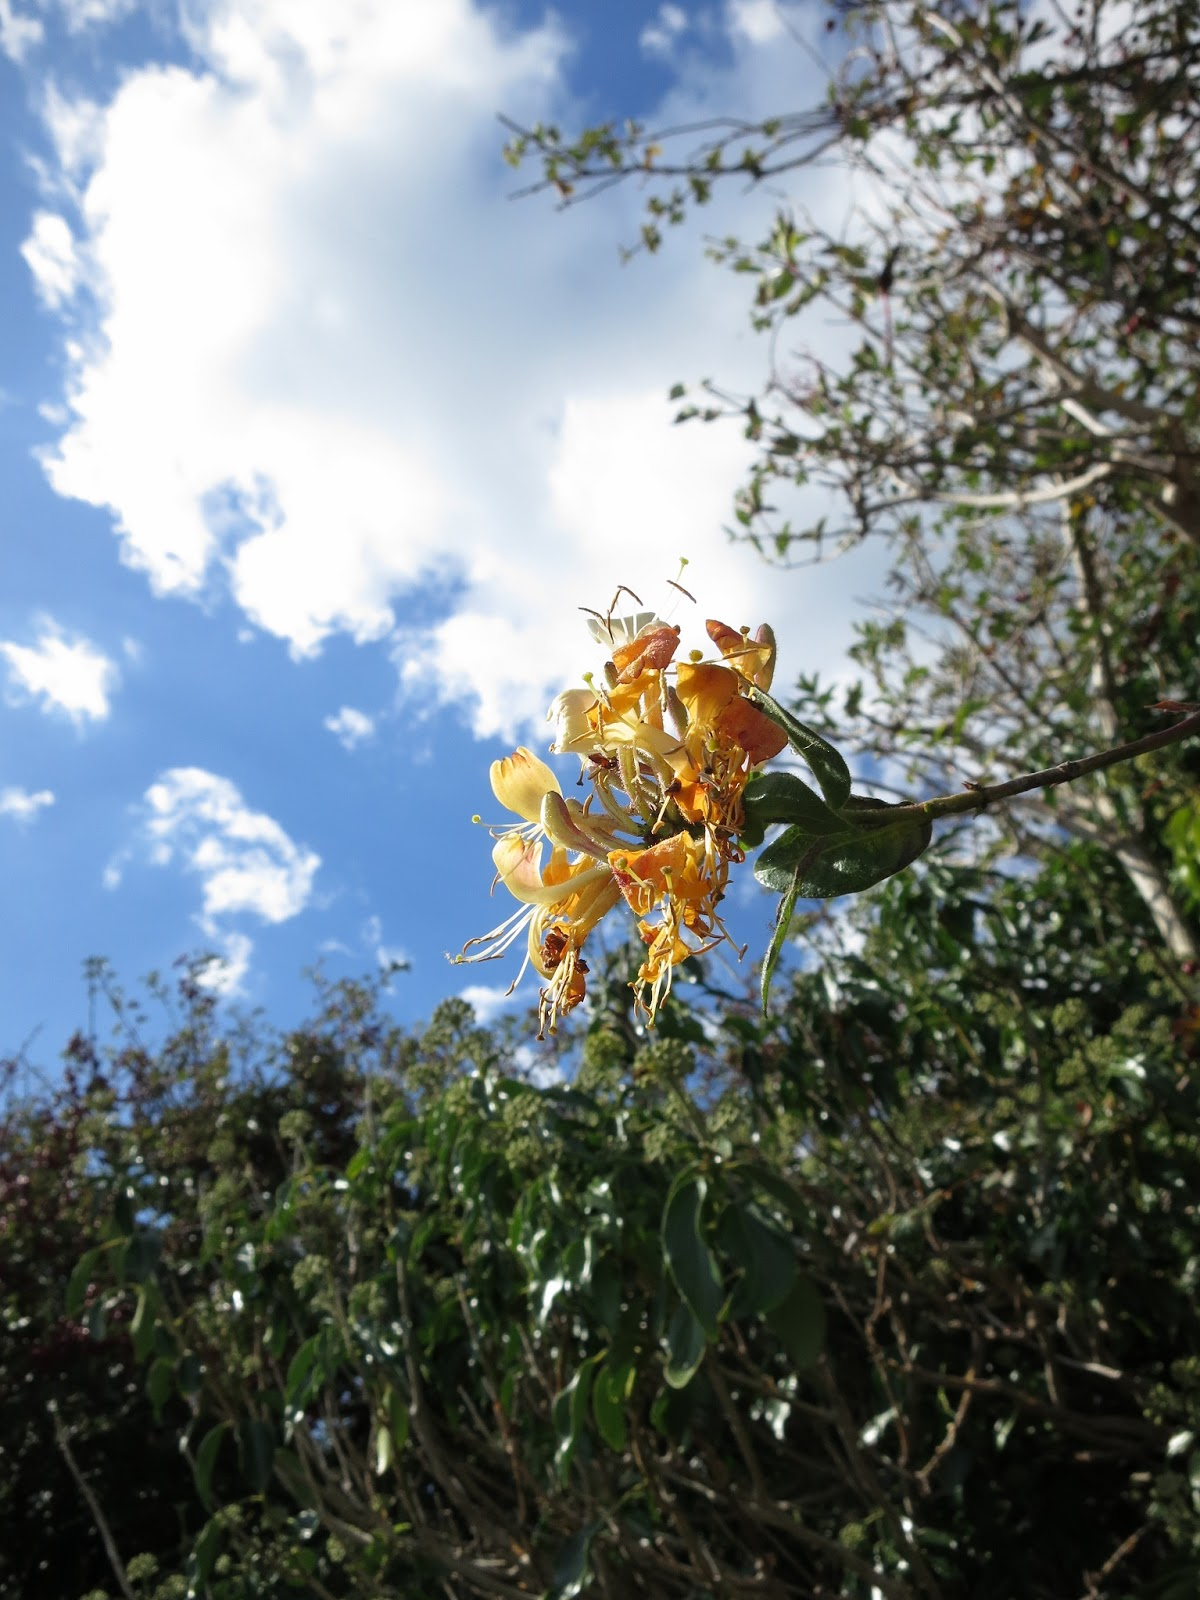 A single yellow honeysuckle (Lonicera) flower sticking out from a hedgerow